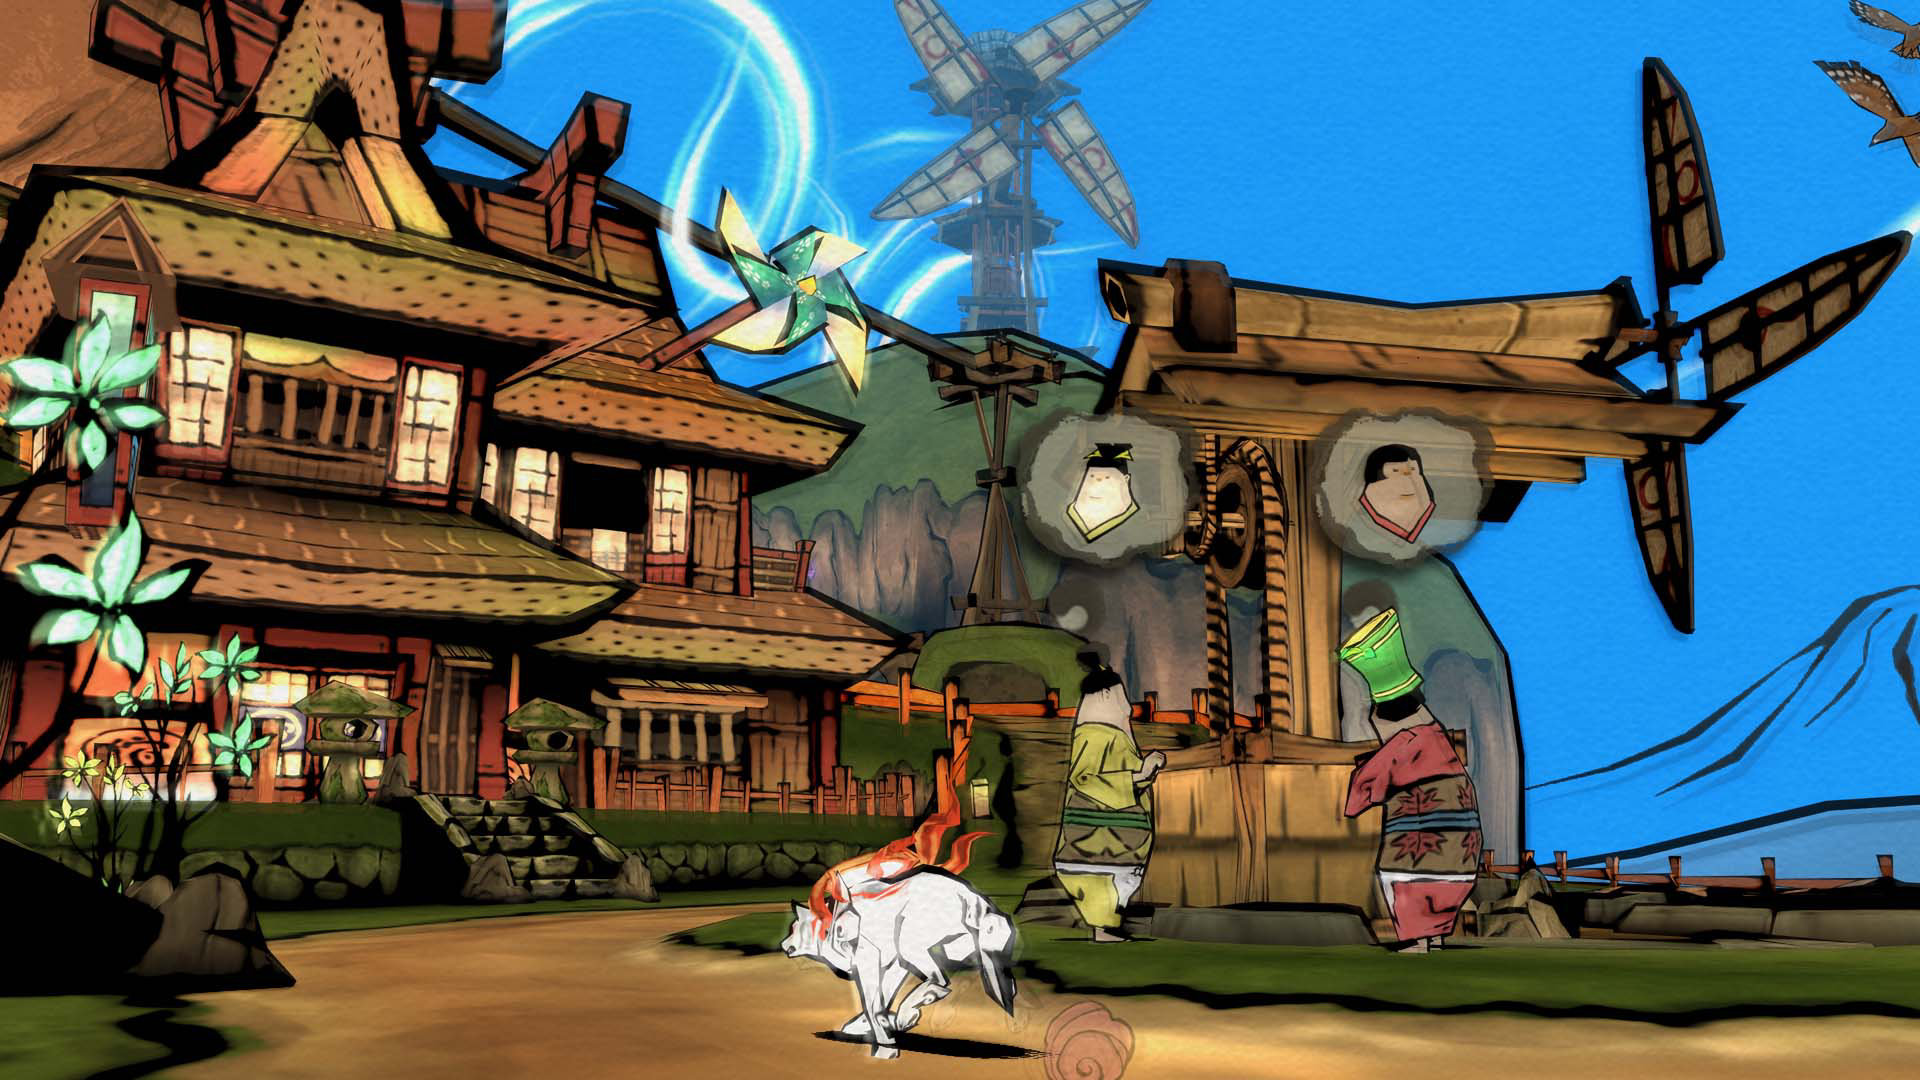 okami-hd-screen-01-ps4-us-12dec17?$Media